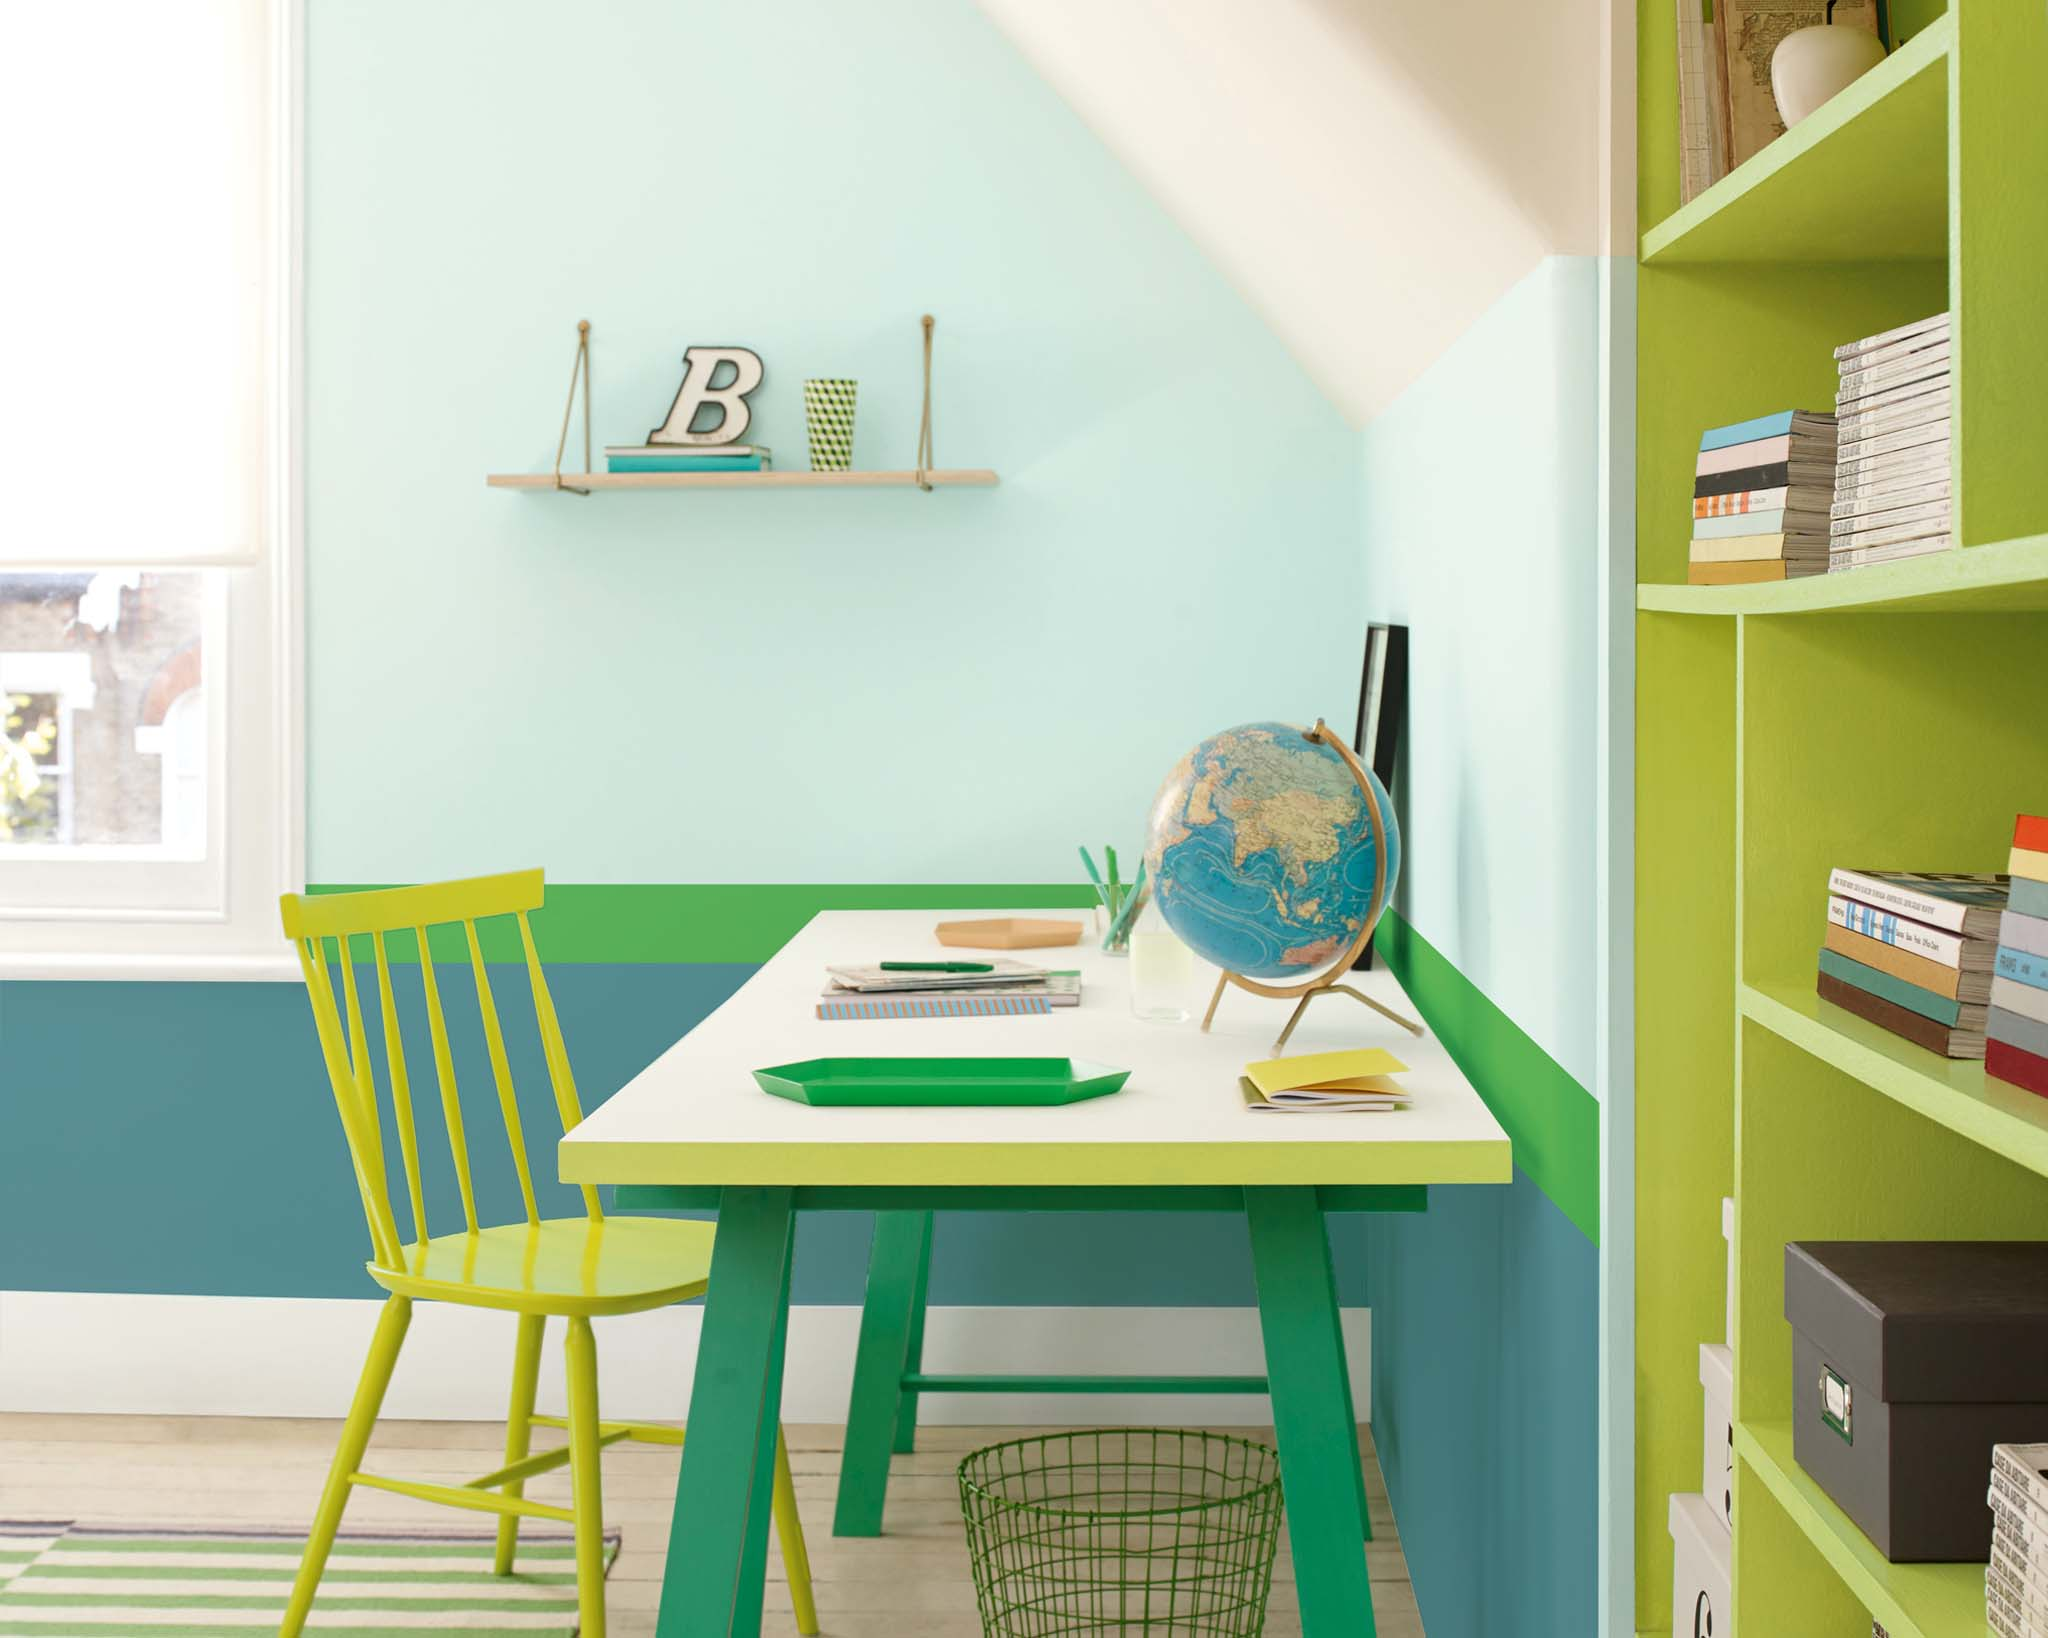 Create a study corner in your child's bedroom with green stripes